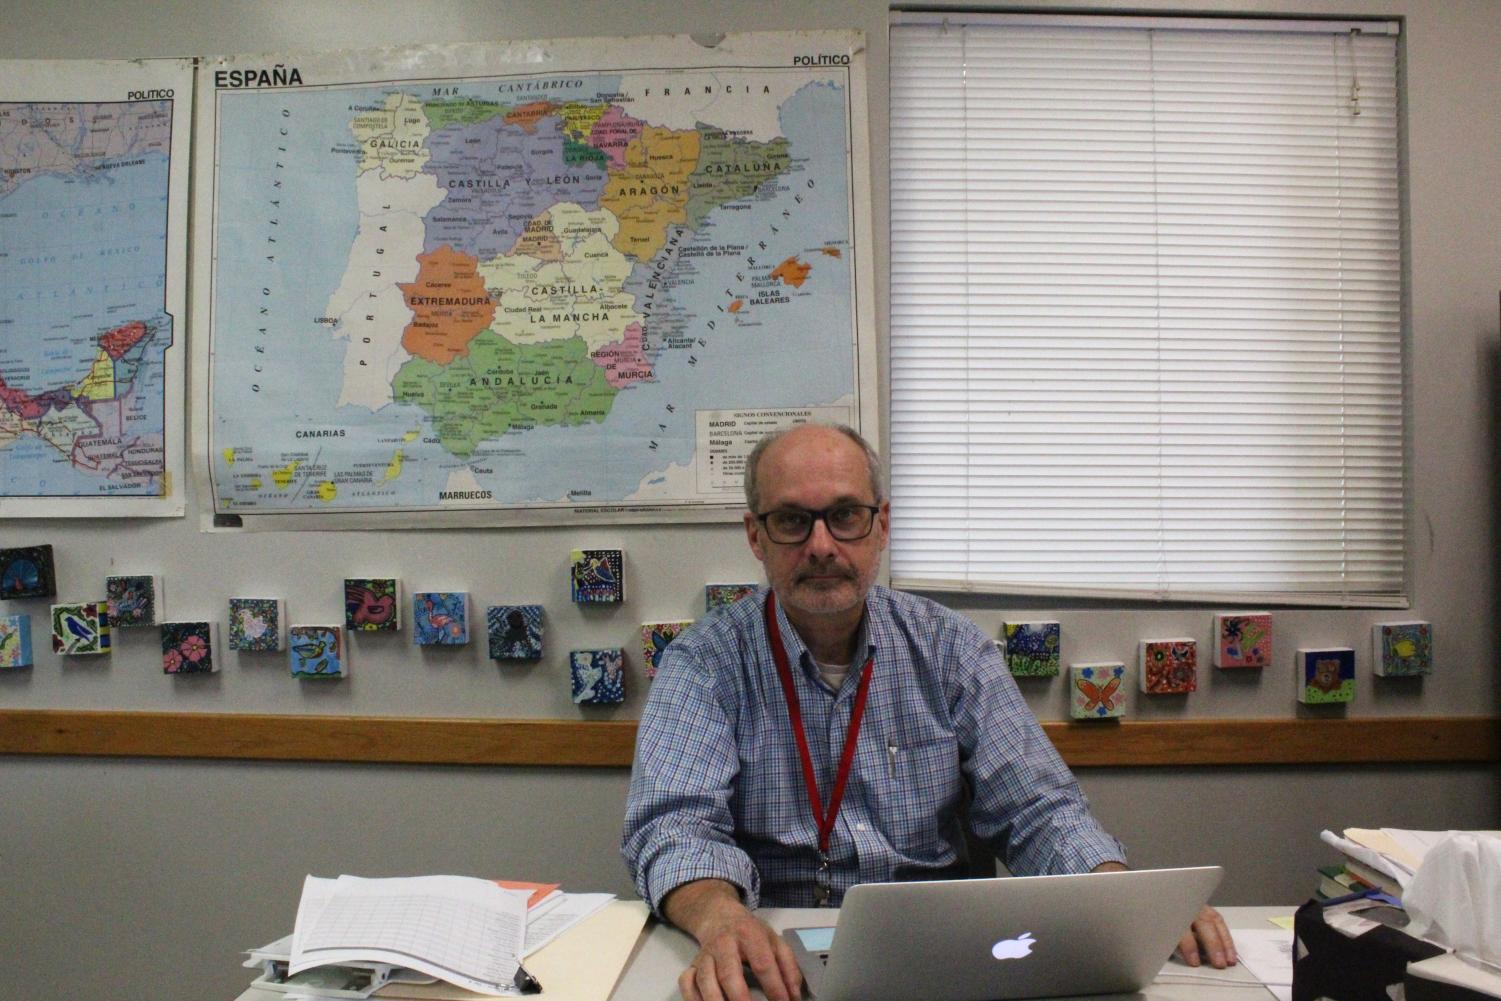 James Amstutz works to share his passion for the Spanish language with his students.